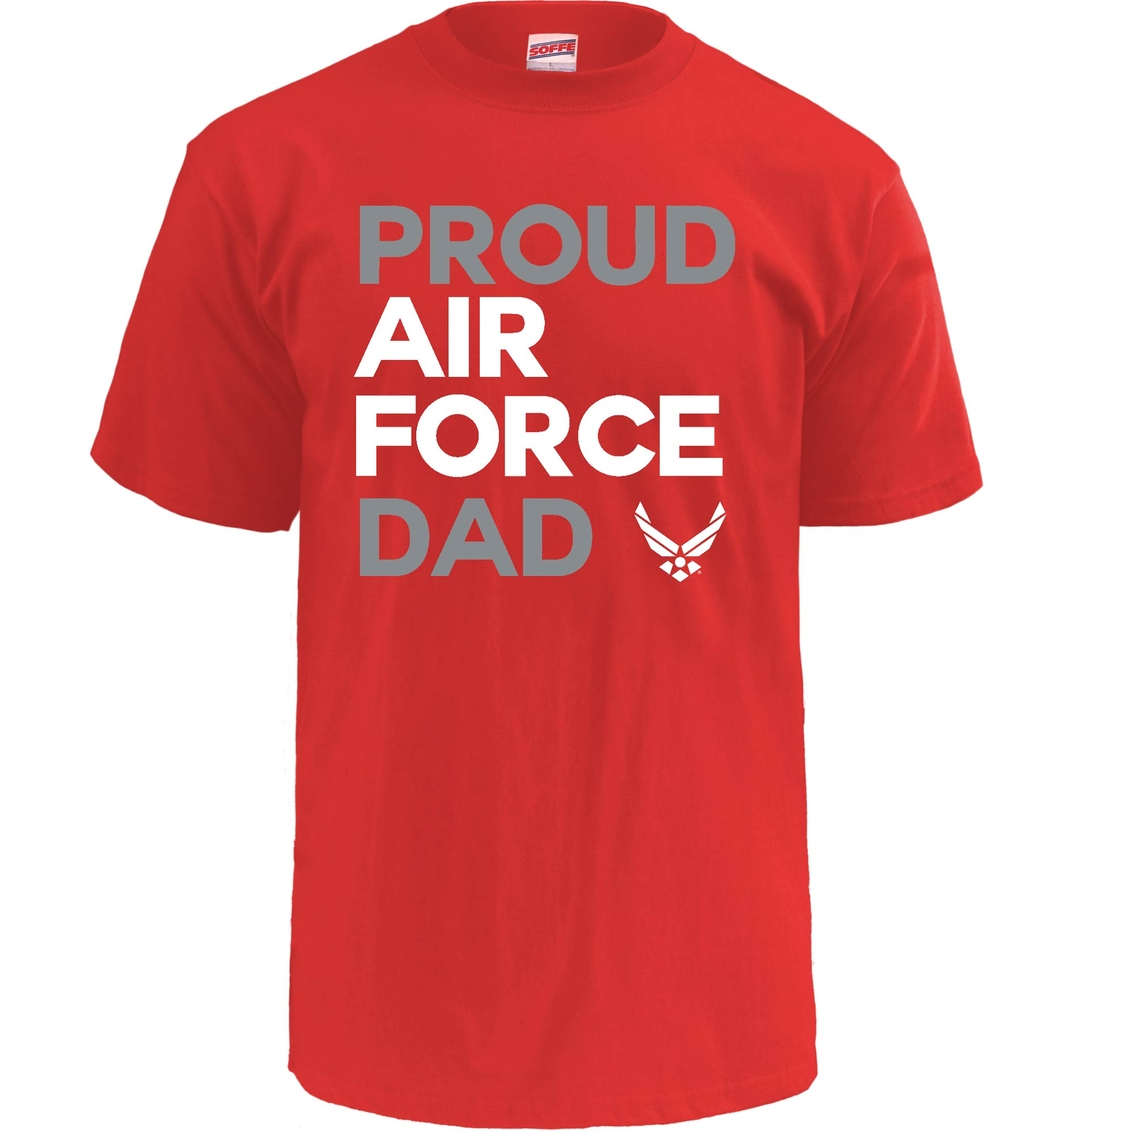 035cf3c5 Soffe Proud Air Force Dad Tee | Apparel | Apparel | Shop The Exchange